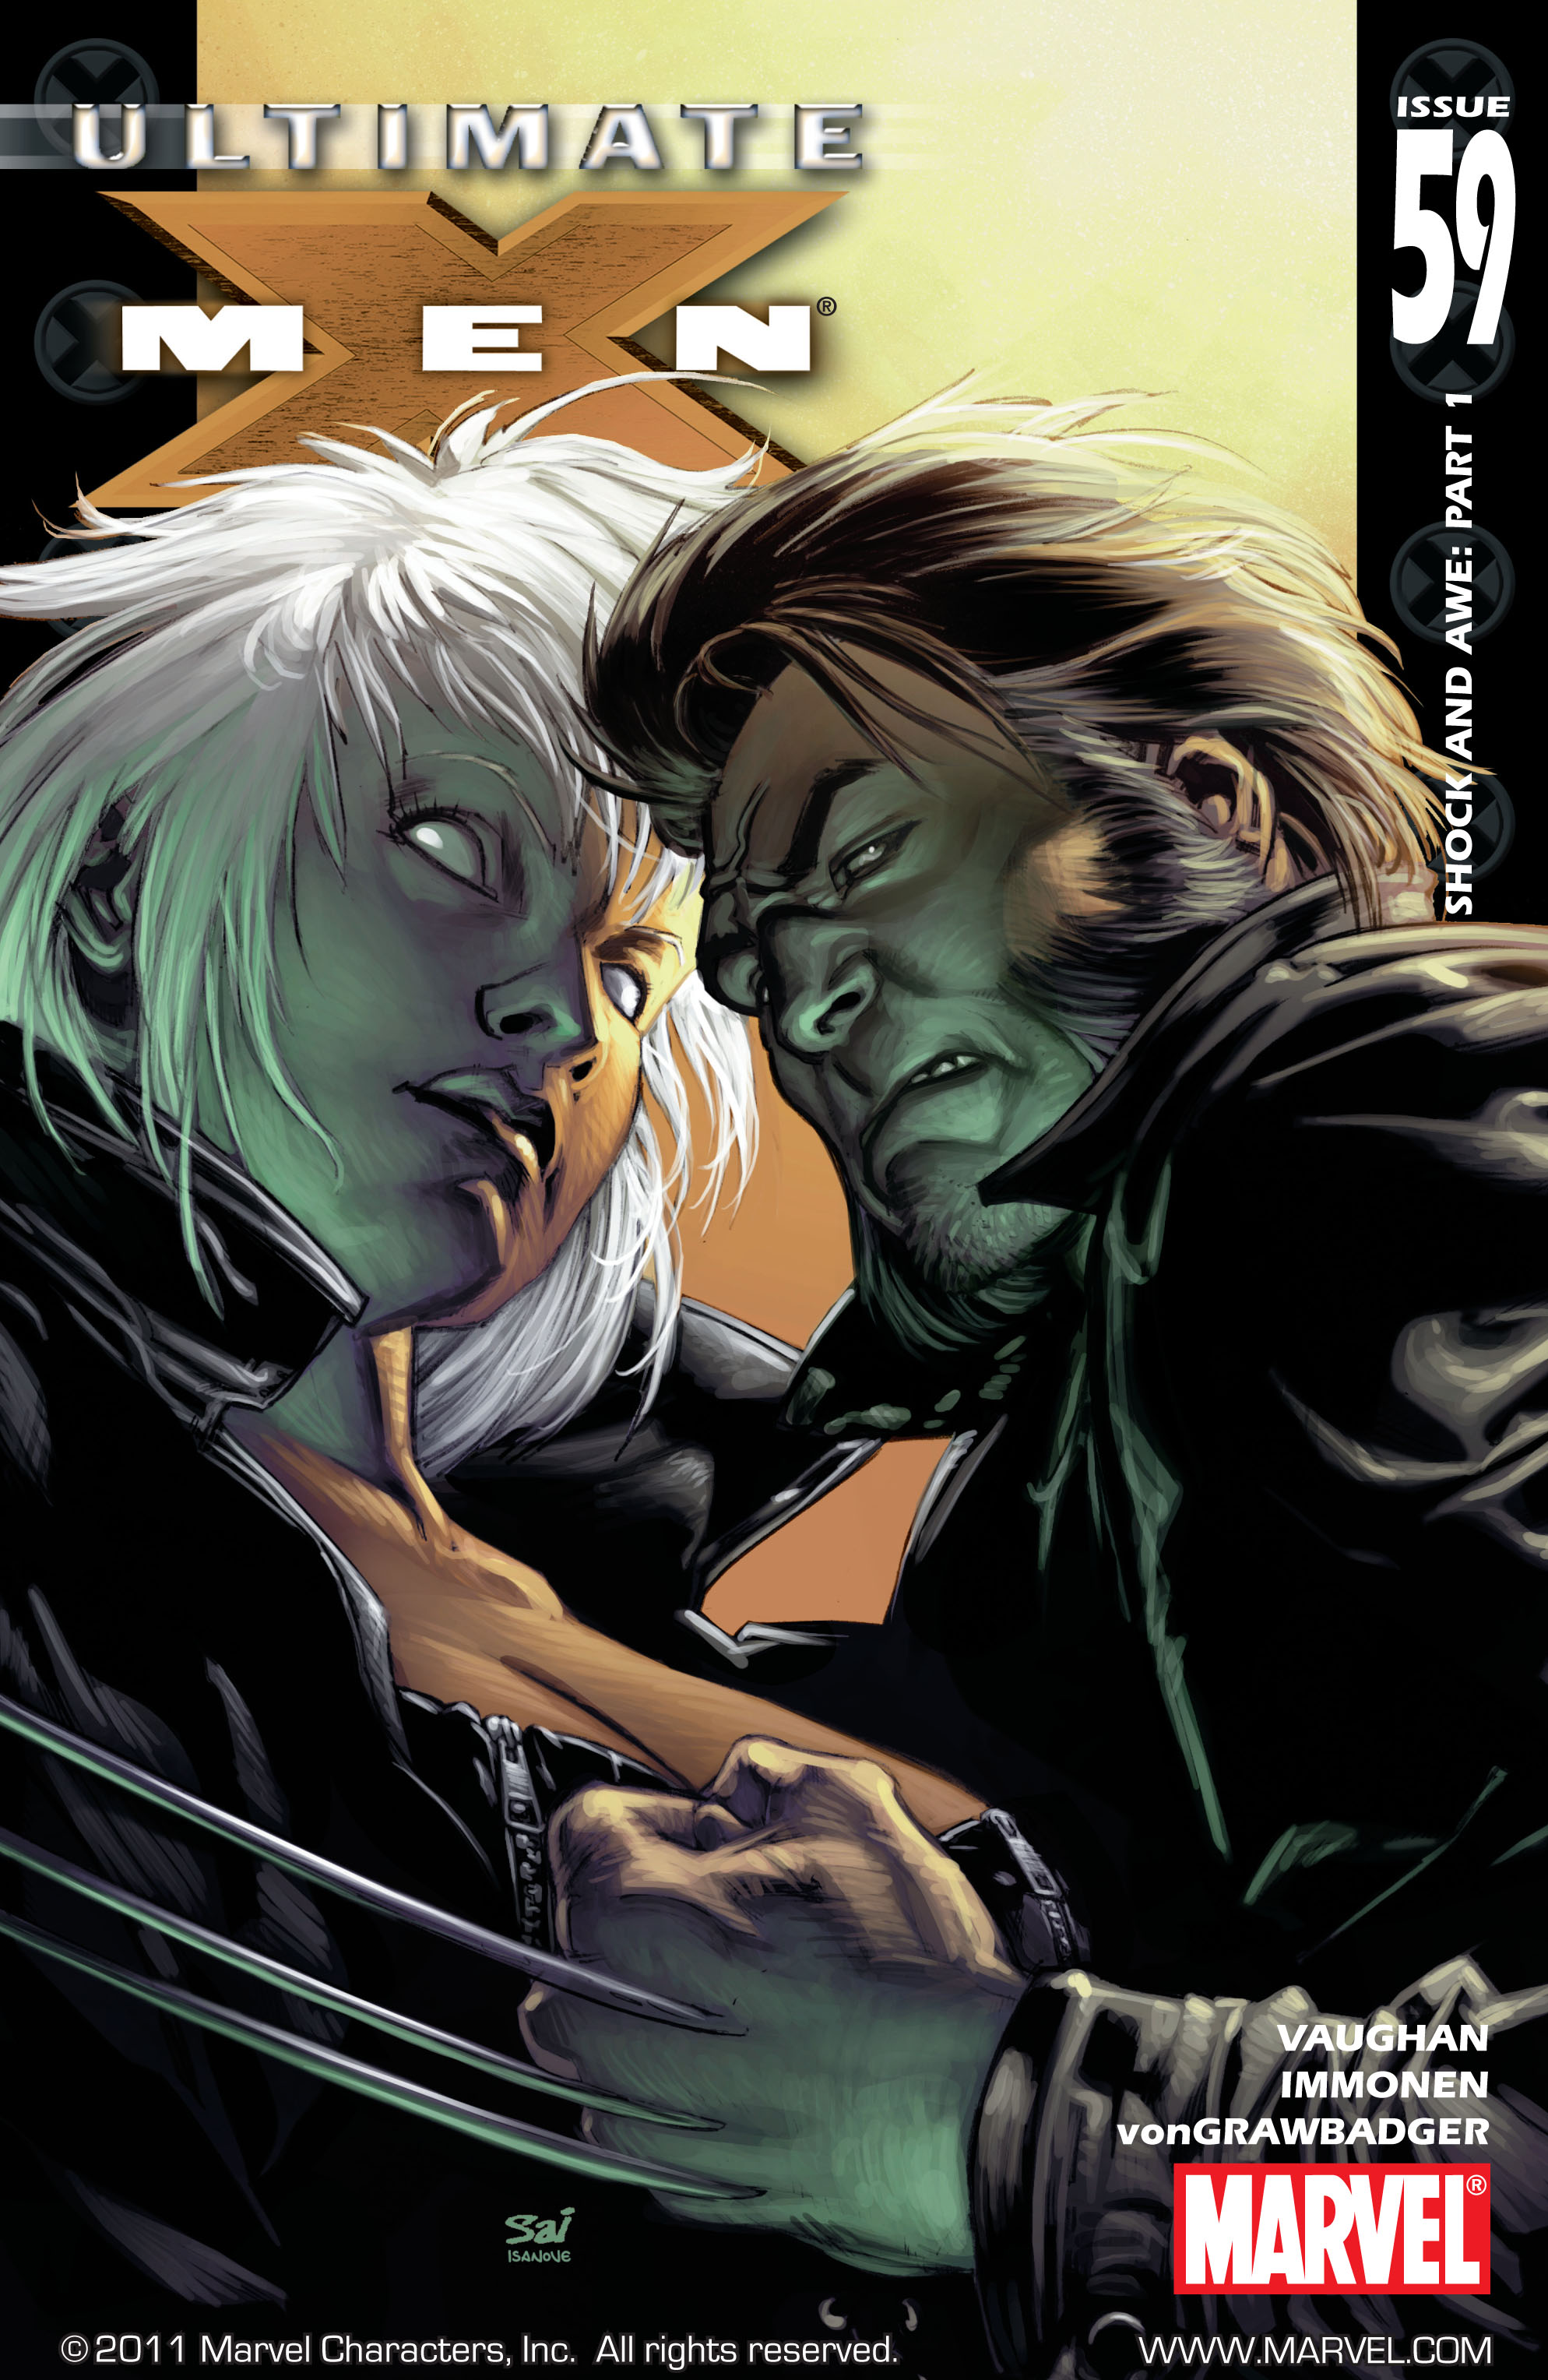 Read online Ultimate X-Men comic -  Issue #59 - 1